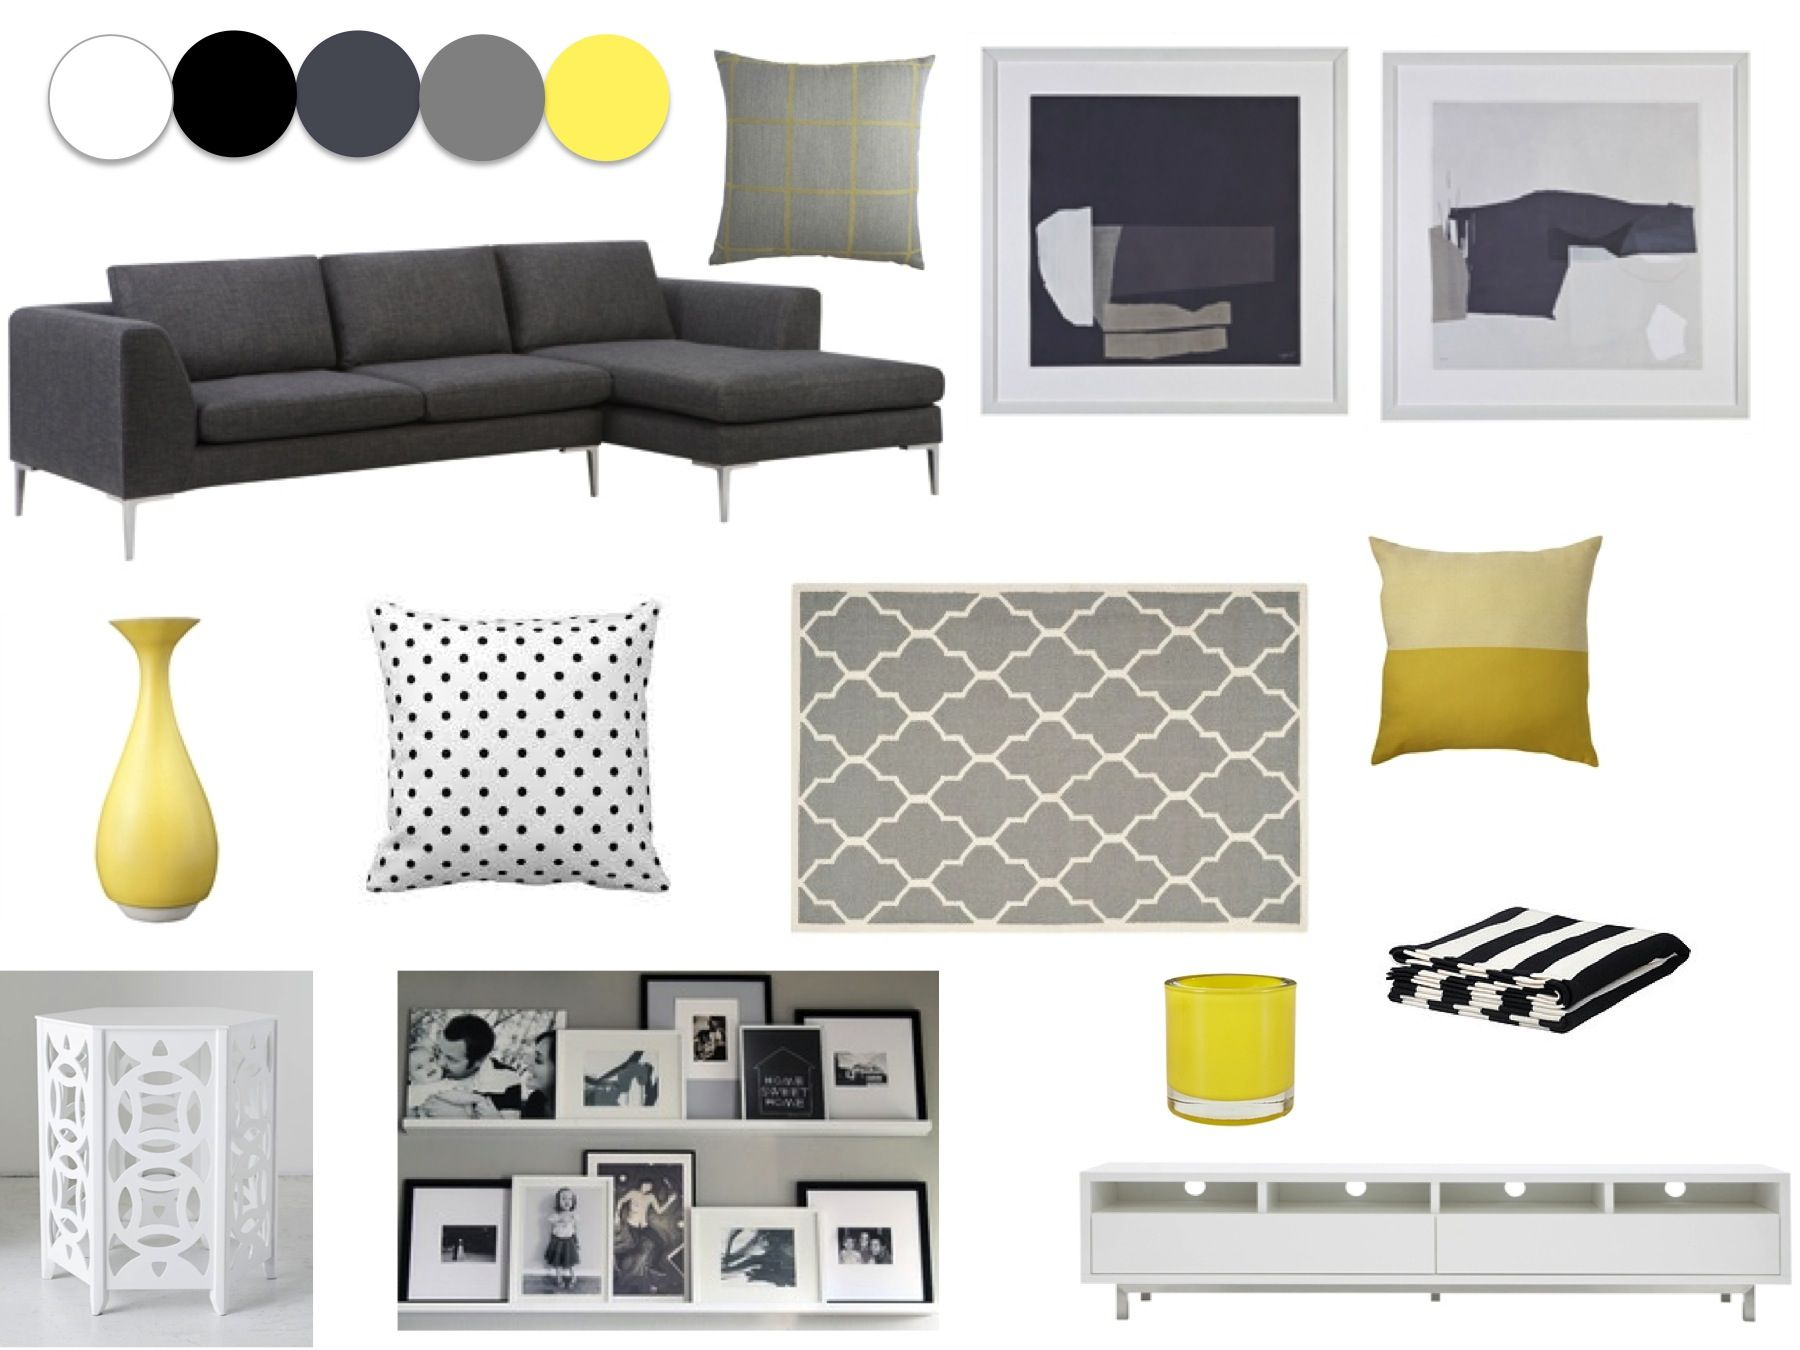 Superieur Grey, Yellow, White And Black Living Room